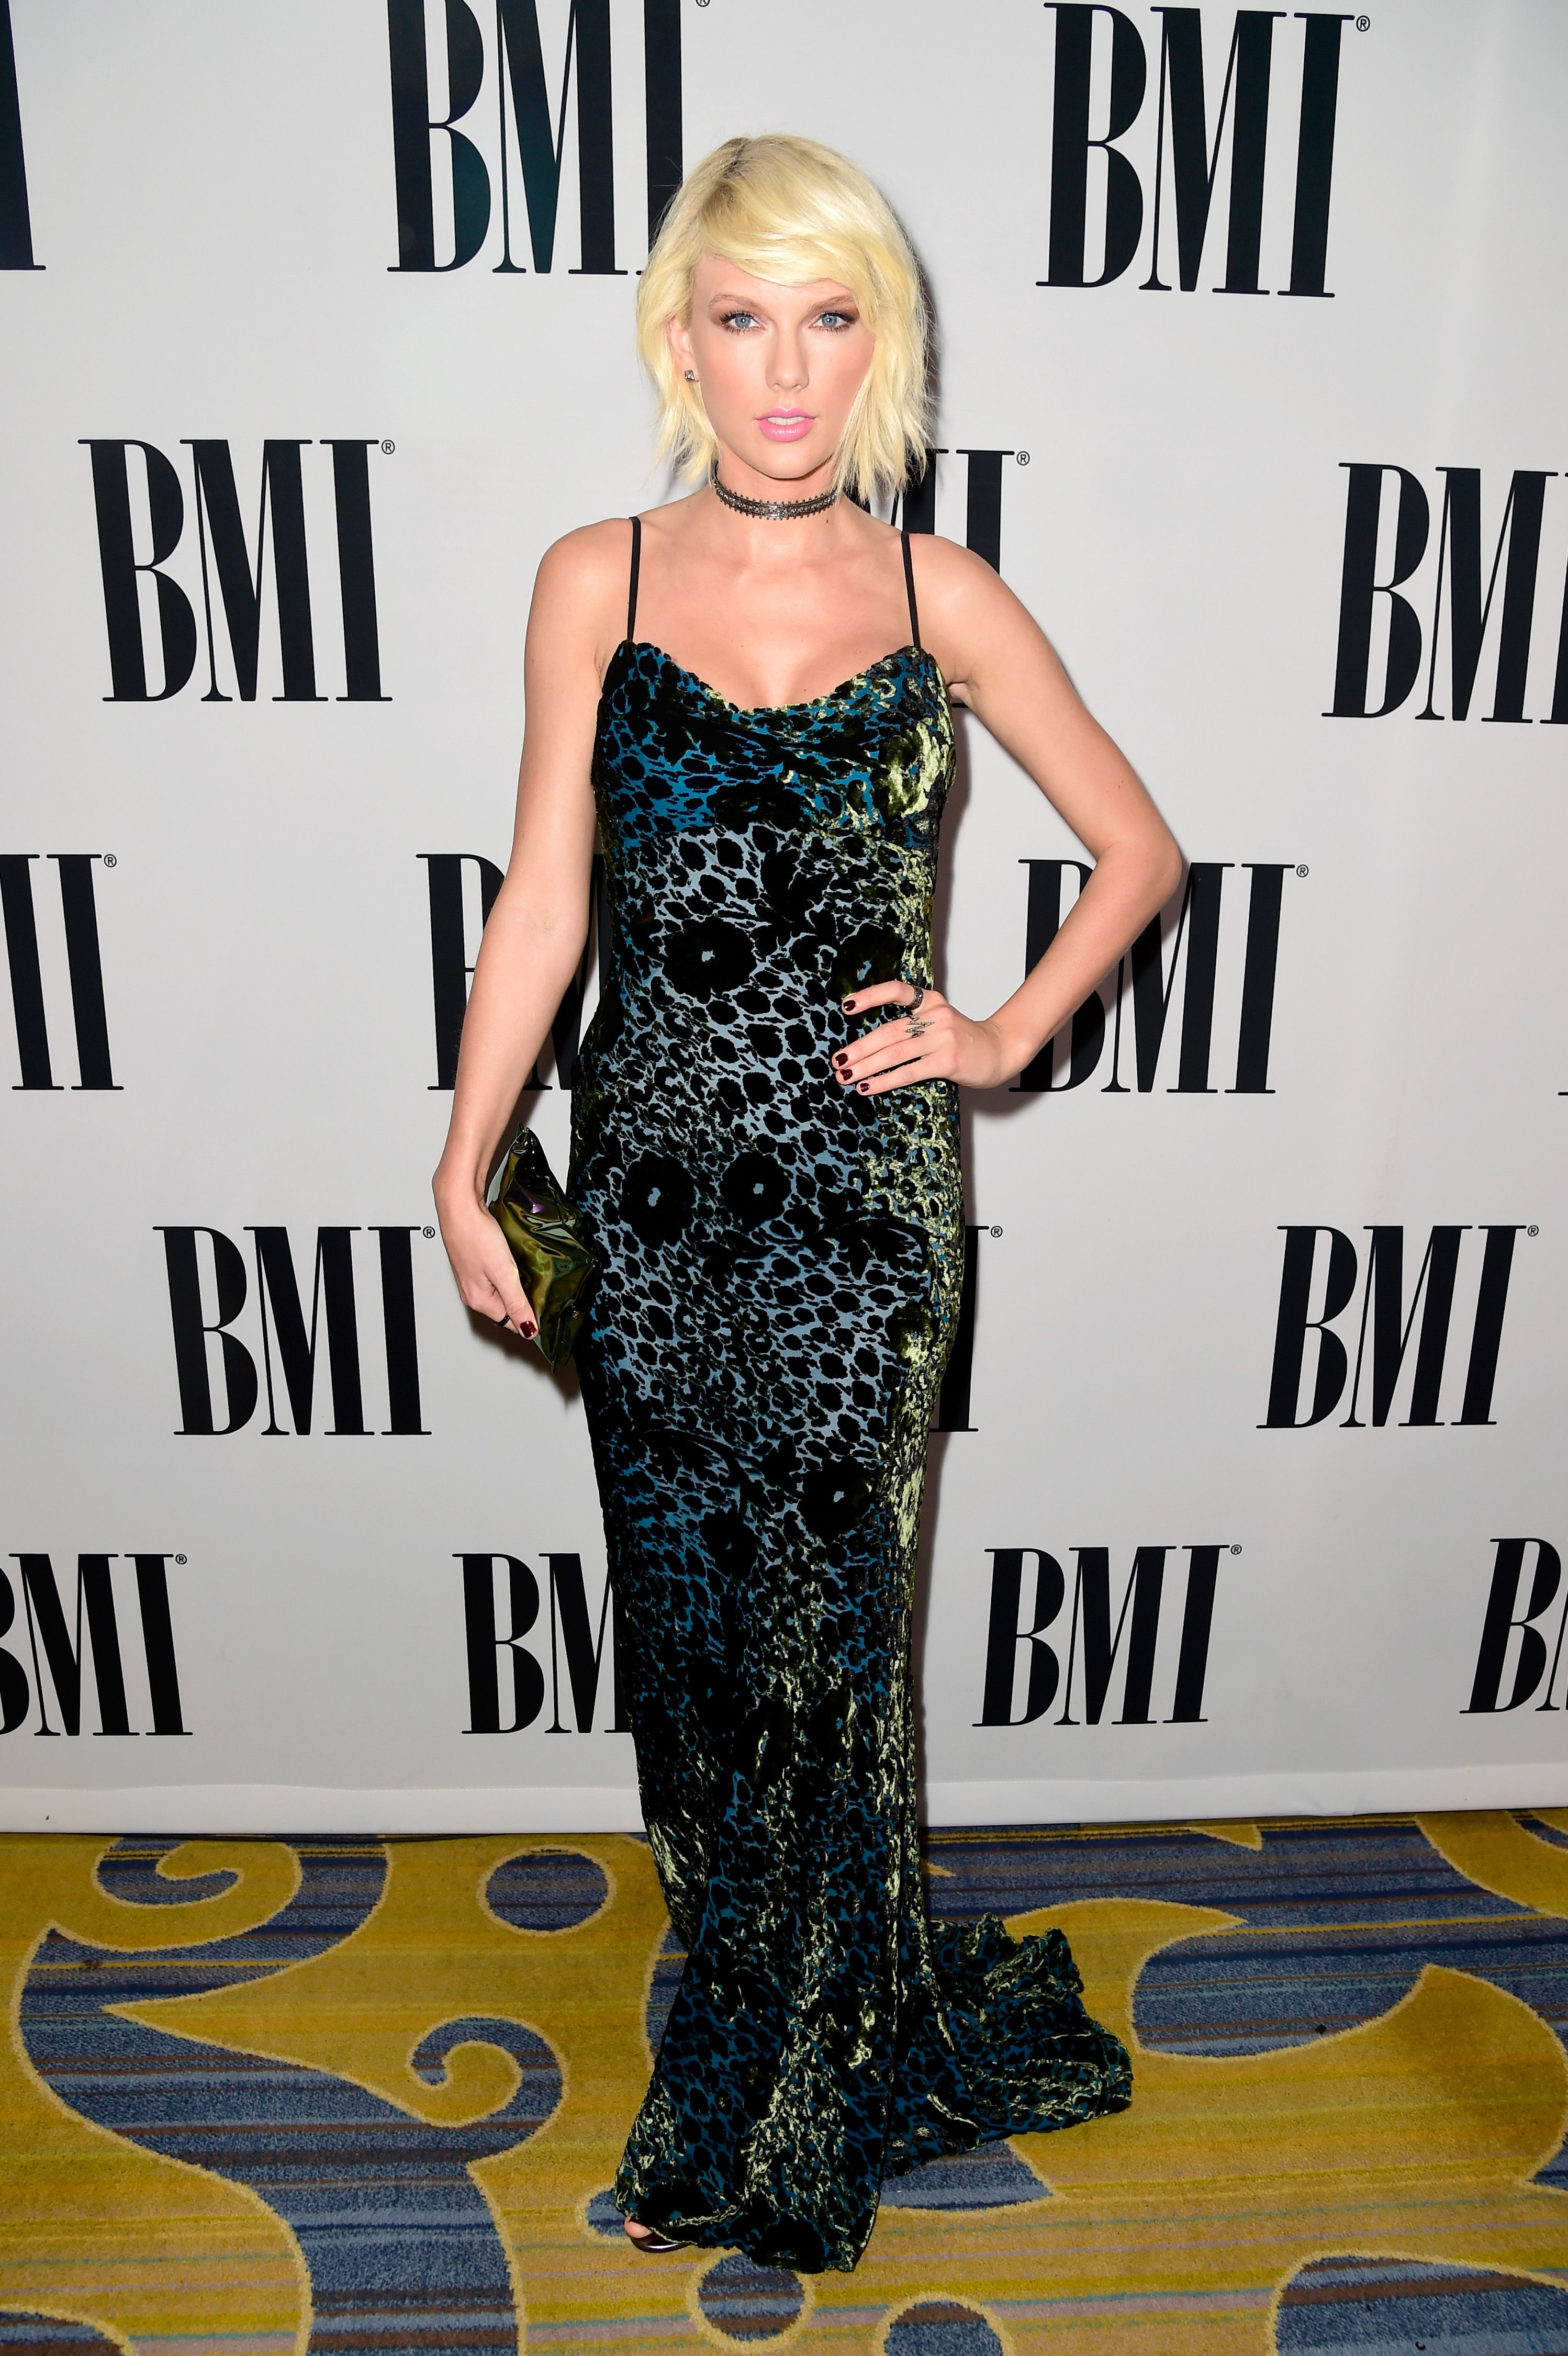 Taylor Swift Looked Very Sexy At The 2016 Bmi Awards